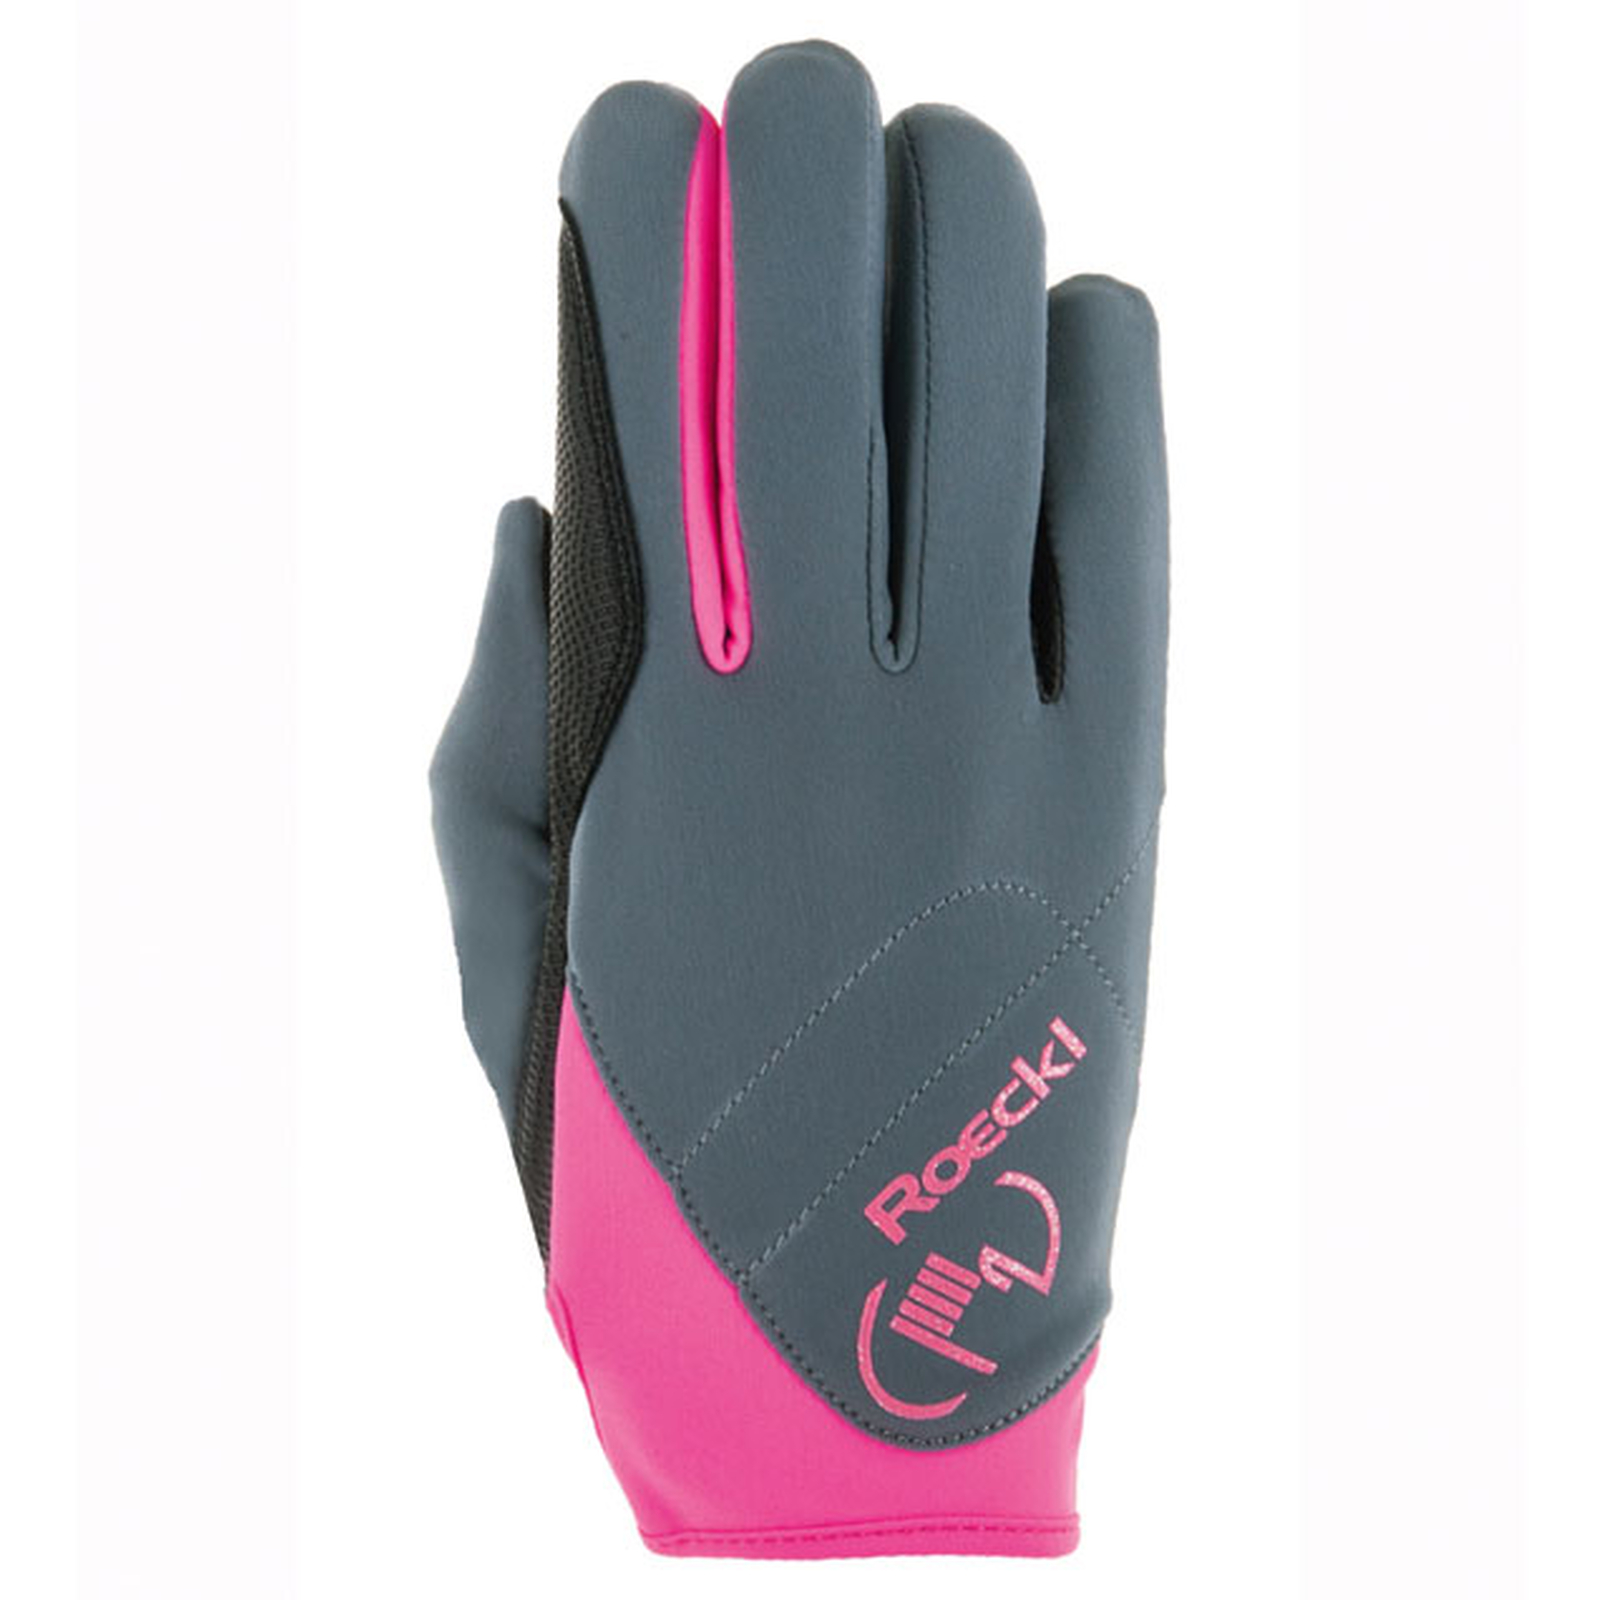 Roeckl Sports Trudy Gloves